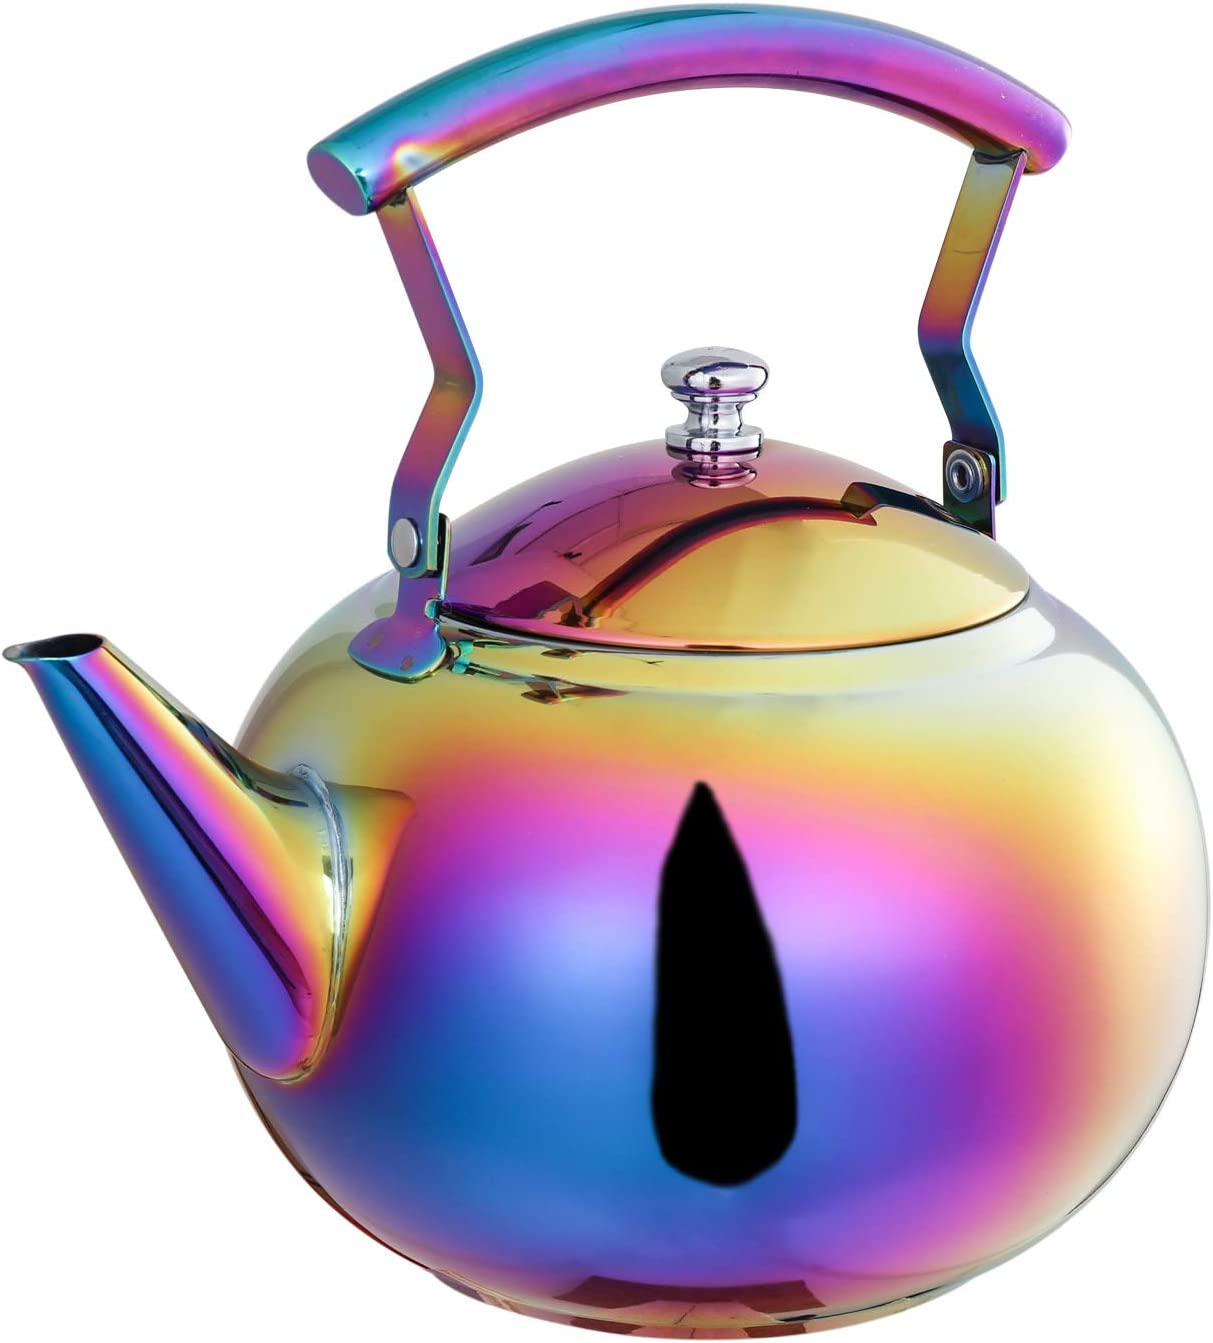 Rainbow Tea Kettle with Infuser for Loose Leaf,Stainless Steel Teapot 2 Liter Coffee Tea Pot Strainer, Colorful Teakettle for Stovetop Induction Stove Top Boiling Water 2 Quart 68 Ounce by ROYDOM